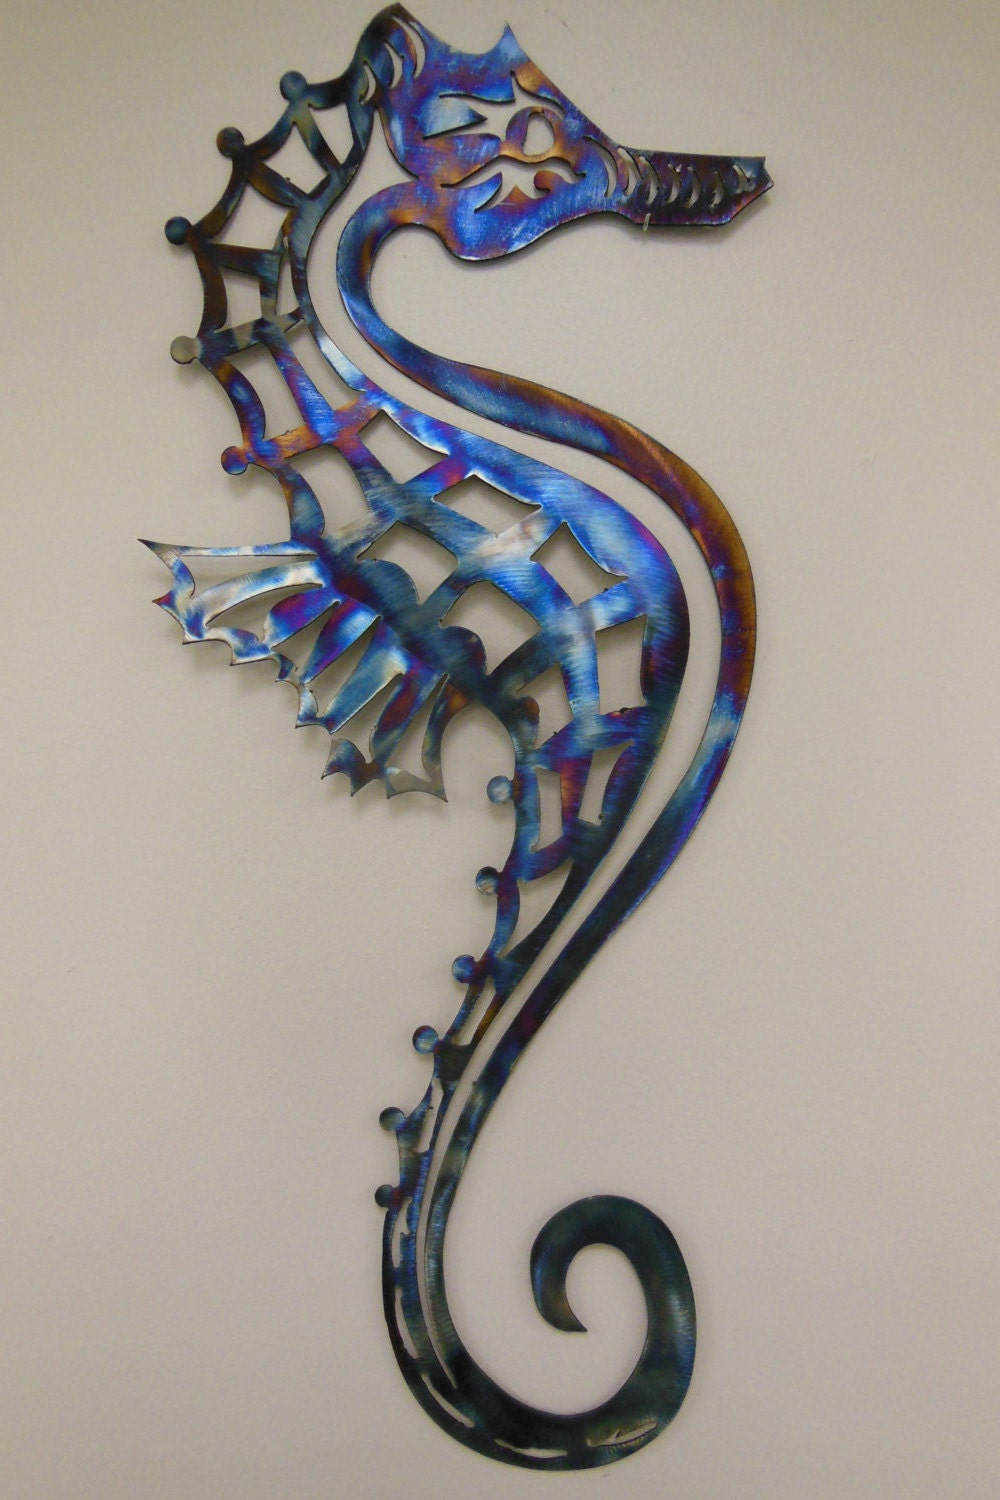 seahorse metal art wall sculpture in aluminum or stainless. Black Bedroom Furniture Sets. Home Design Ideas